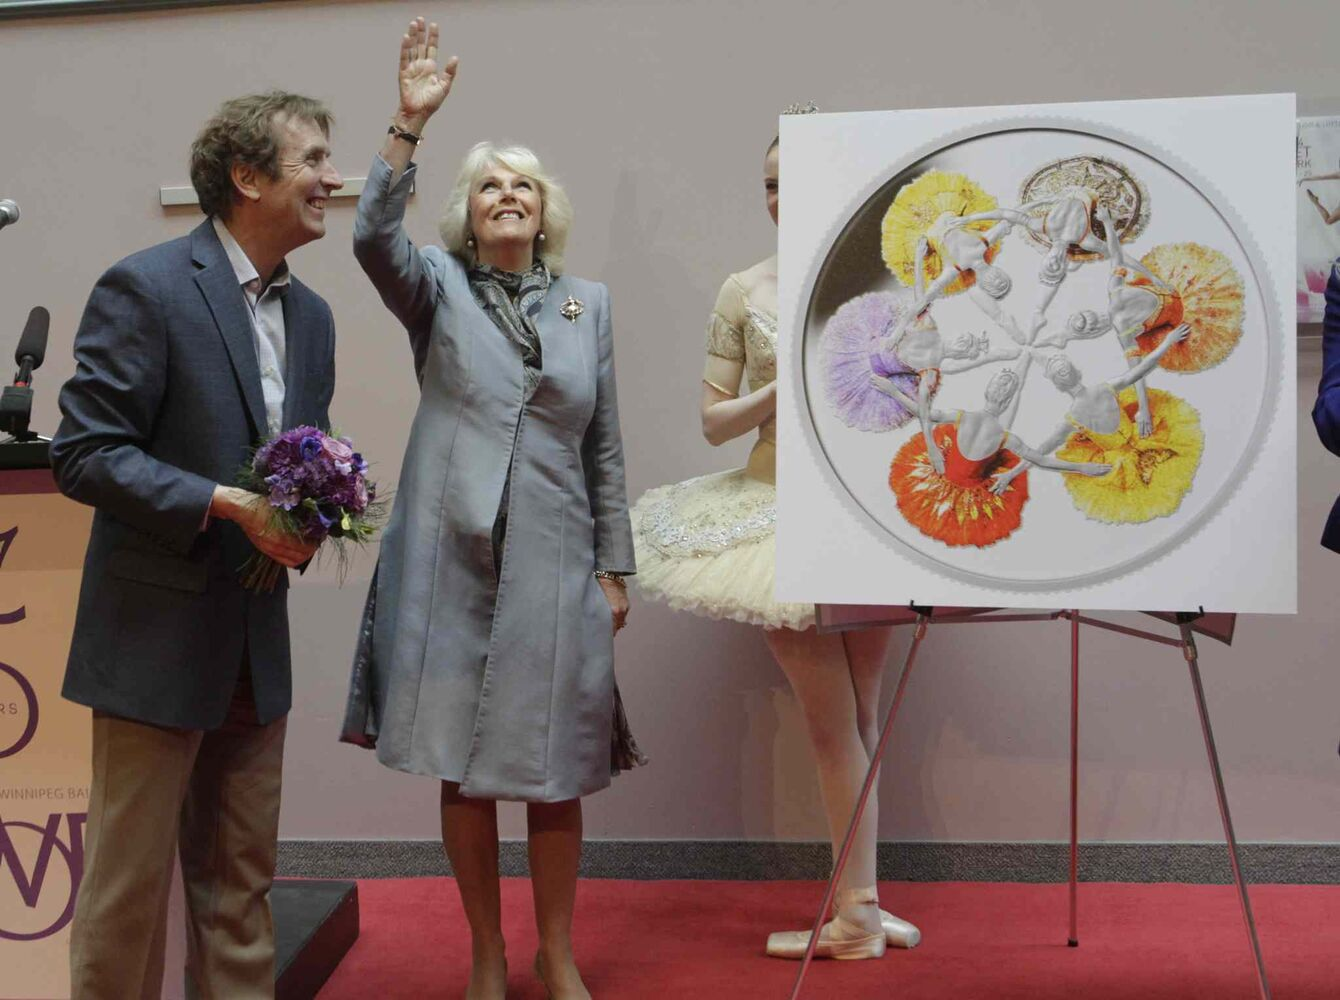 Camilla, Duchess of Cornwall with RWB Artistic Director Andre Lewis during Canada's Royal Winnipeg Ballet building visit. At right is the new silver collector coin to commemorate the 75th anniversary of Canada's Royal Winnipeg Ballet.